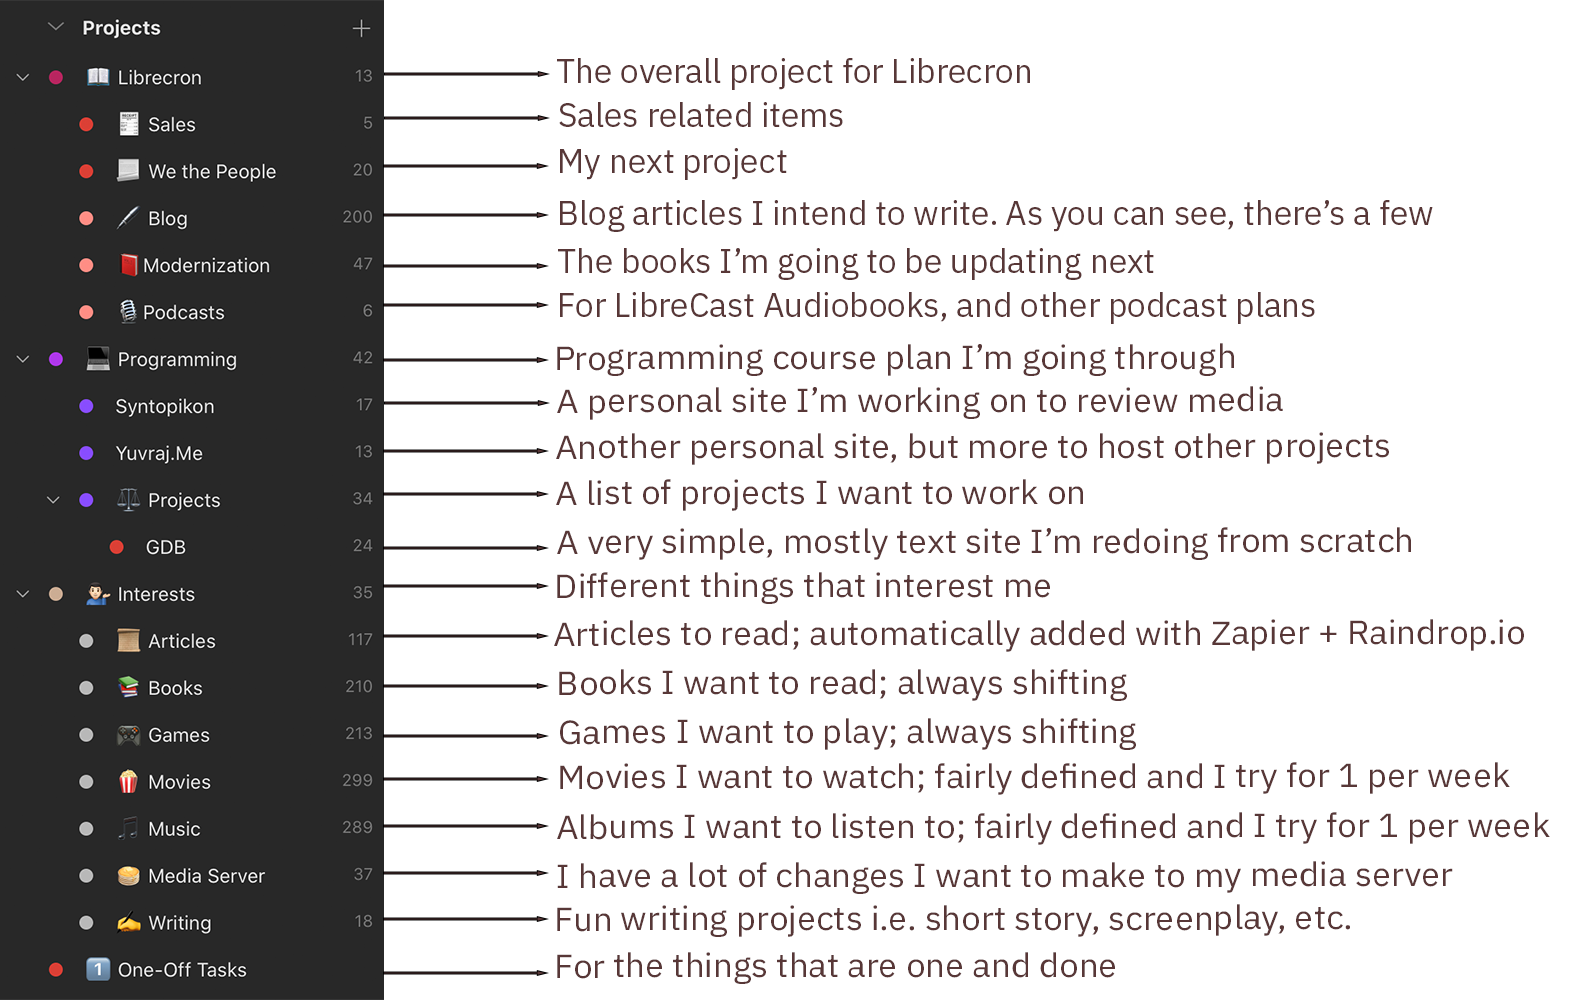 A list of projects the author is working on, along with explanations for them.